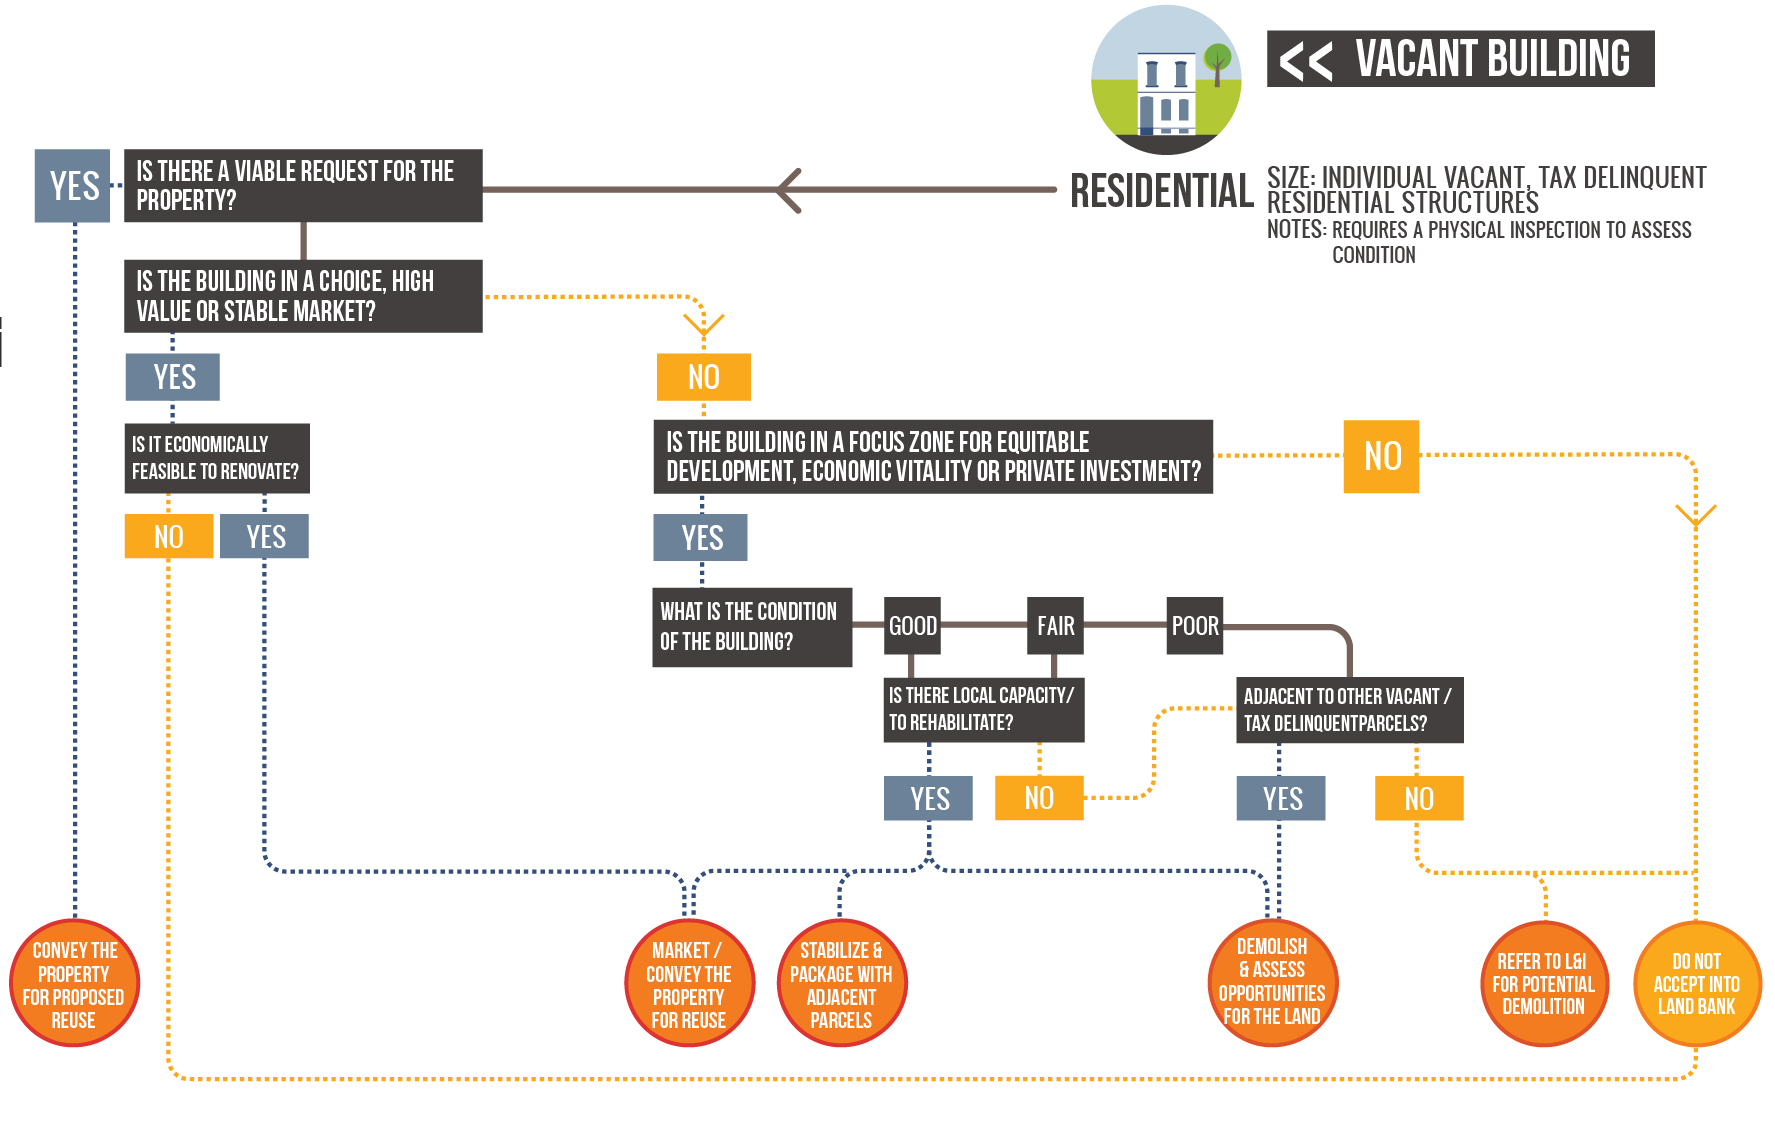 Decision Tree: Vacant buildings